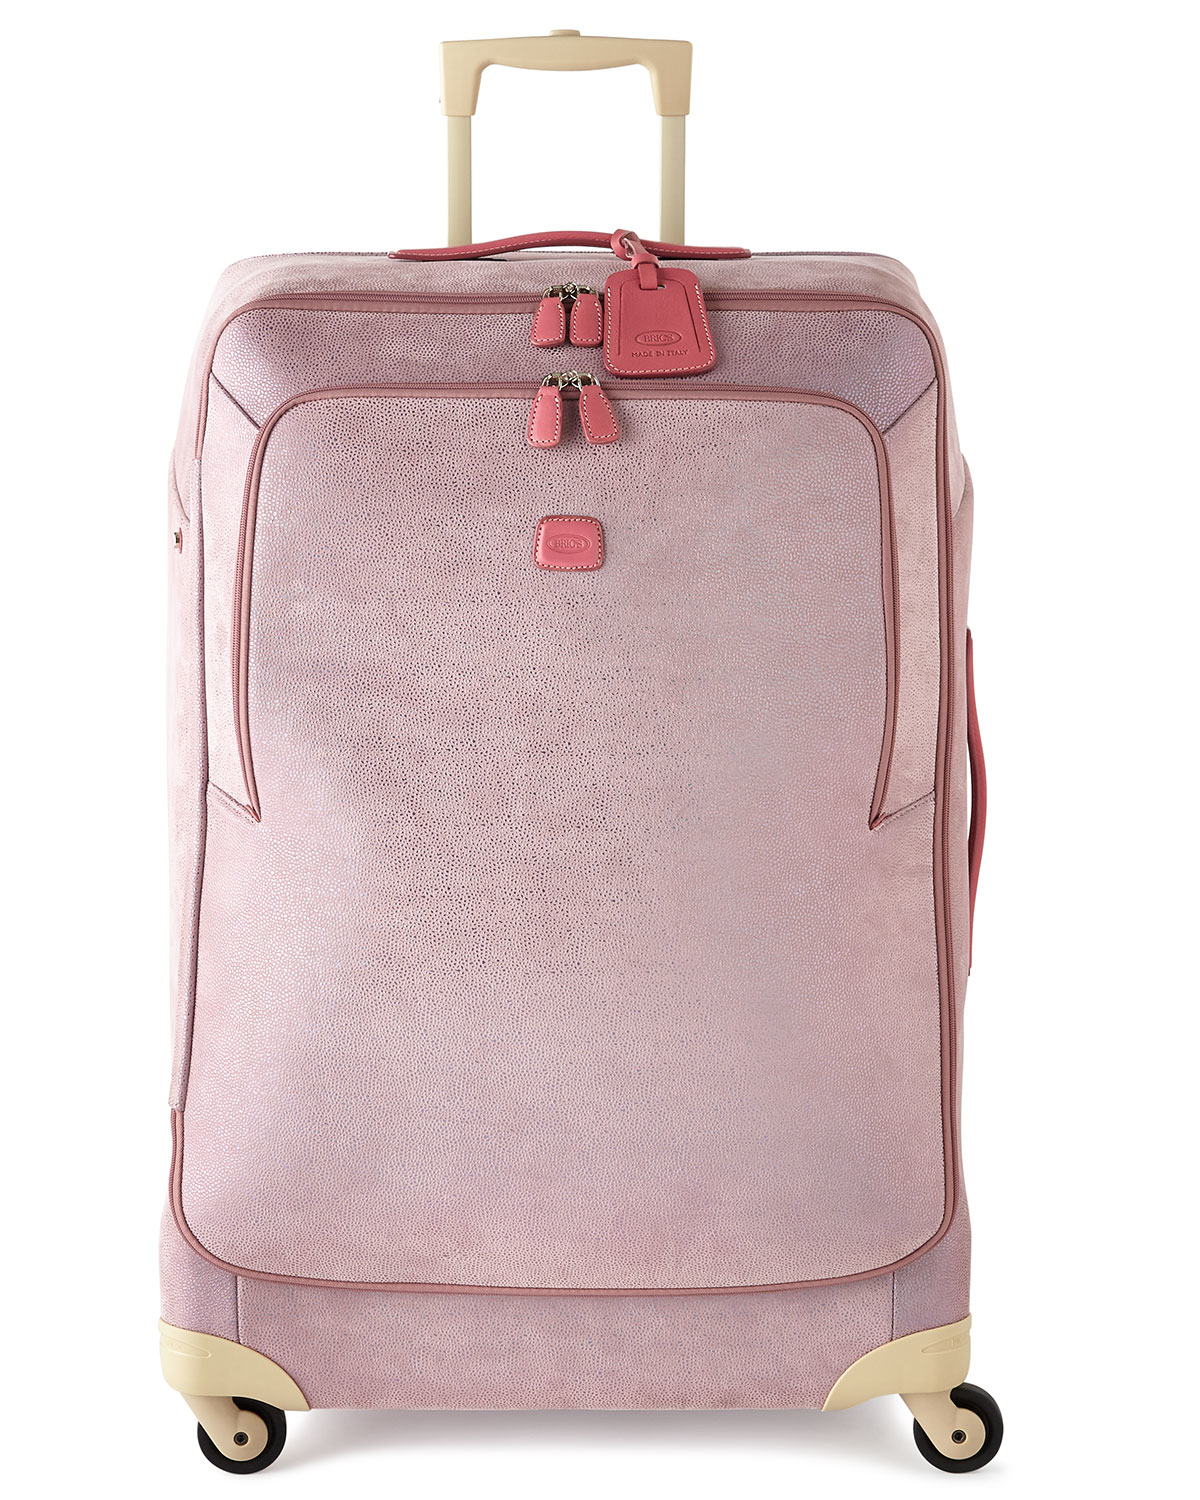 Lyst - Bric'S Life Pearl Pink 32